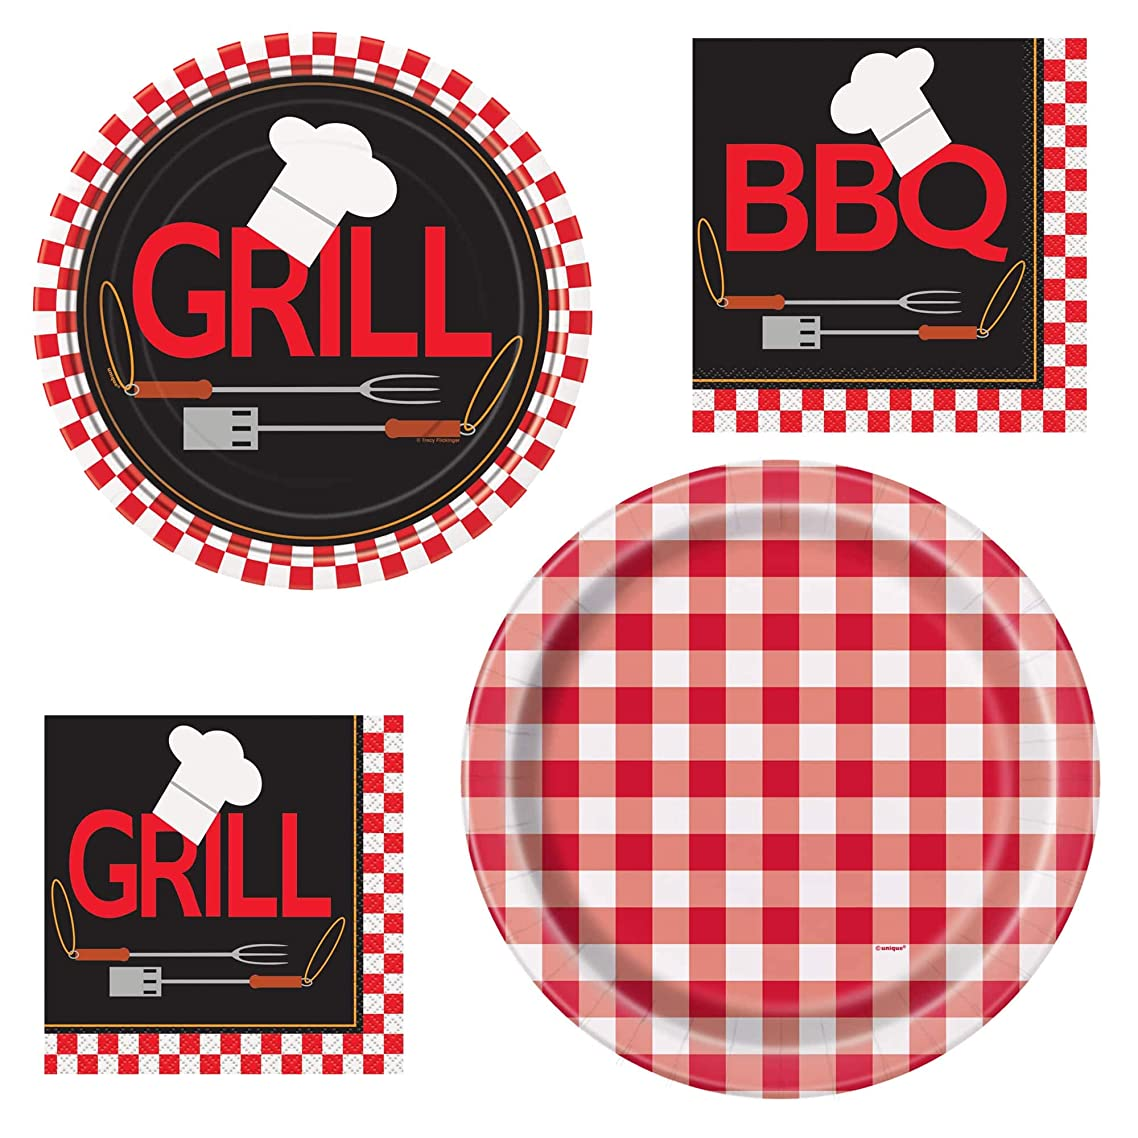 Unique Backyard BBQ Dinnerware Bundle | Luncheon & Beverage Napkins, Dinner & Dessert Plates | Great for Picnic, Events, Barbecue Nights, Outdoor Gatherings, Gingham Theme